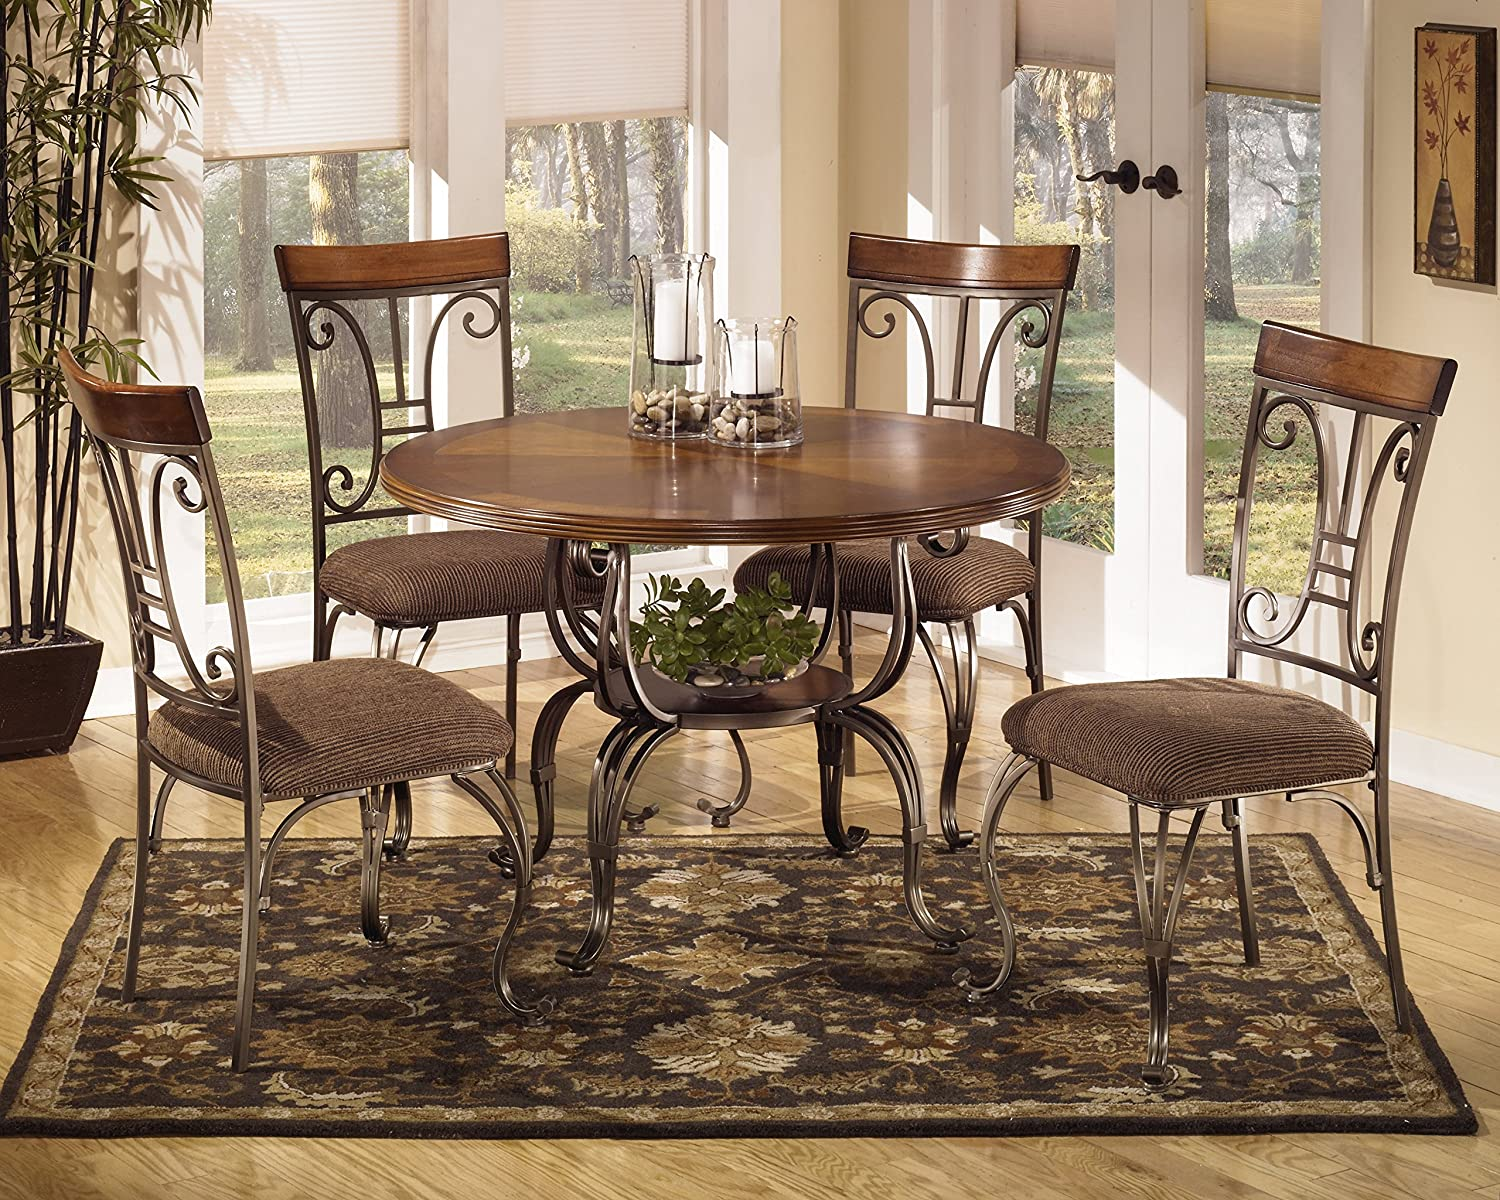 amazon com ashley furniture signature design plentywood dining amazon com ashley furniture signature design plentywood dining room chair set of 4 metal and wood chairs